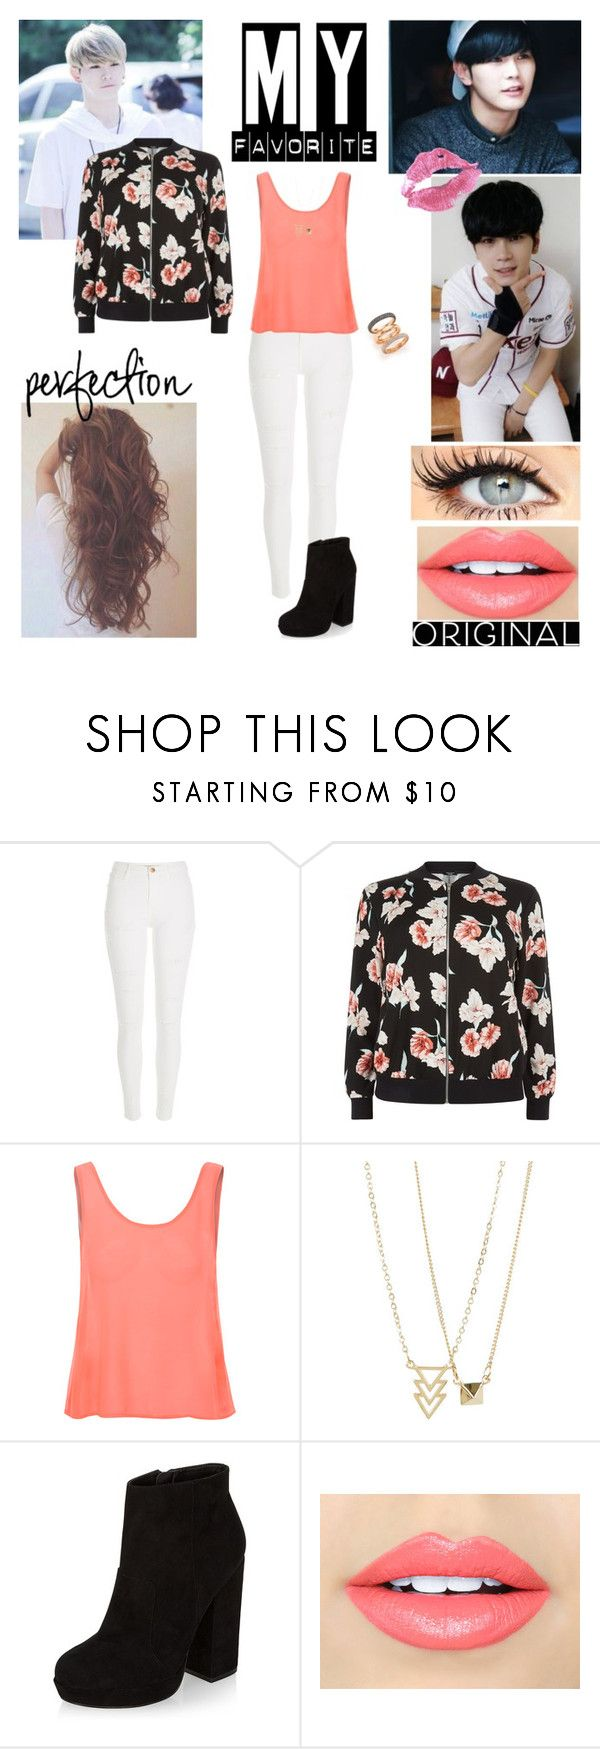 """""""Senza titolo #1170"""" by meddy21 ❤ liked on Polyvore featuring River Island, New Look, Glamorous, Fiebiger and Michael Kors"""